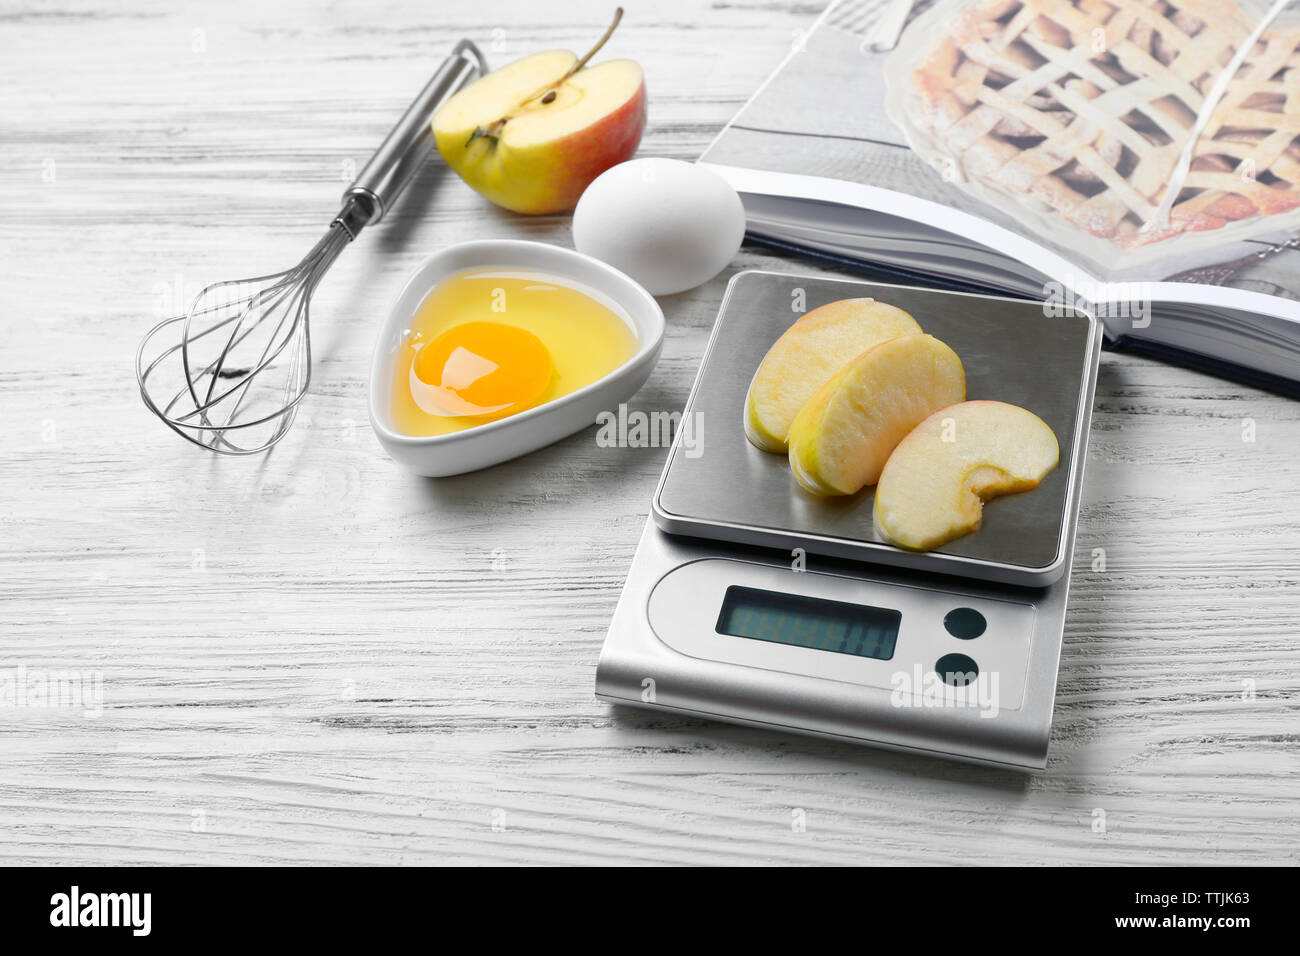 Making apple pie. Using digital kitchen scales on wooden table. Cooking apple cake concept - Stock Image